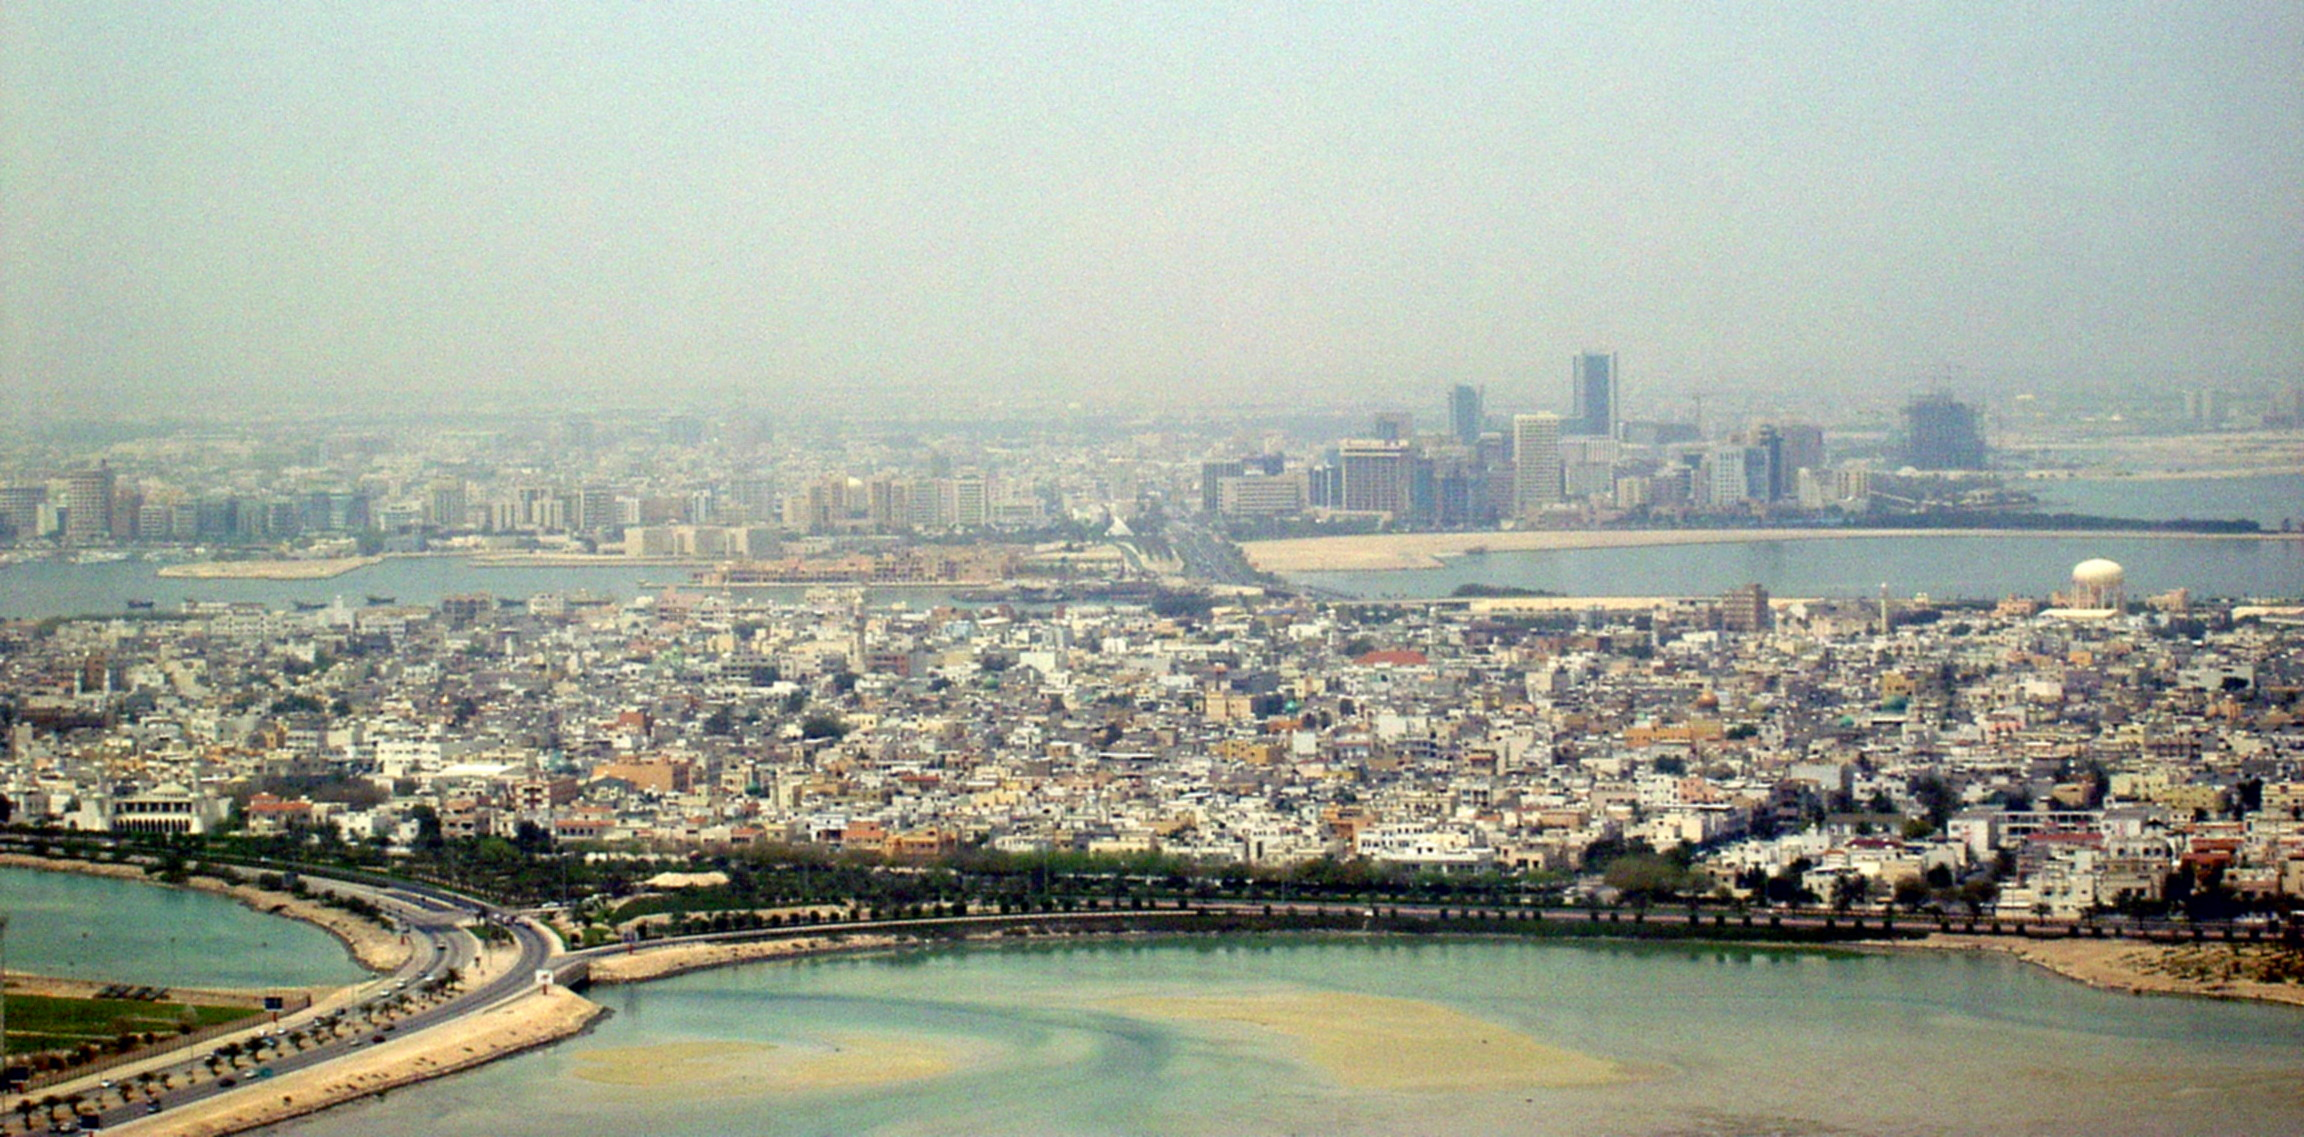 File:Muharraq and Manama.jpg - Wikipedia, the free encyclopedia